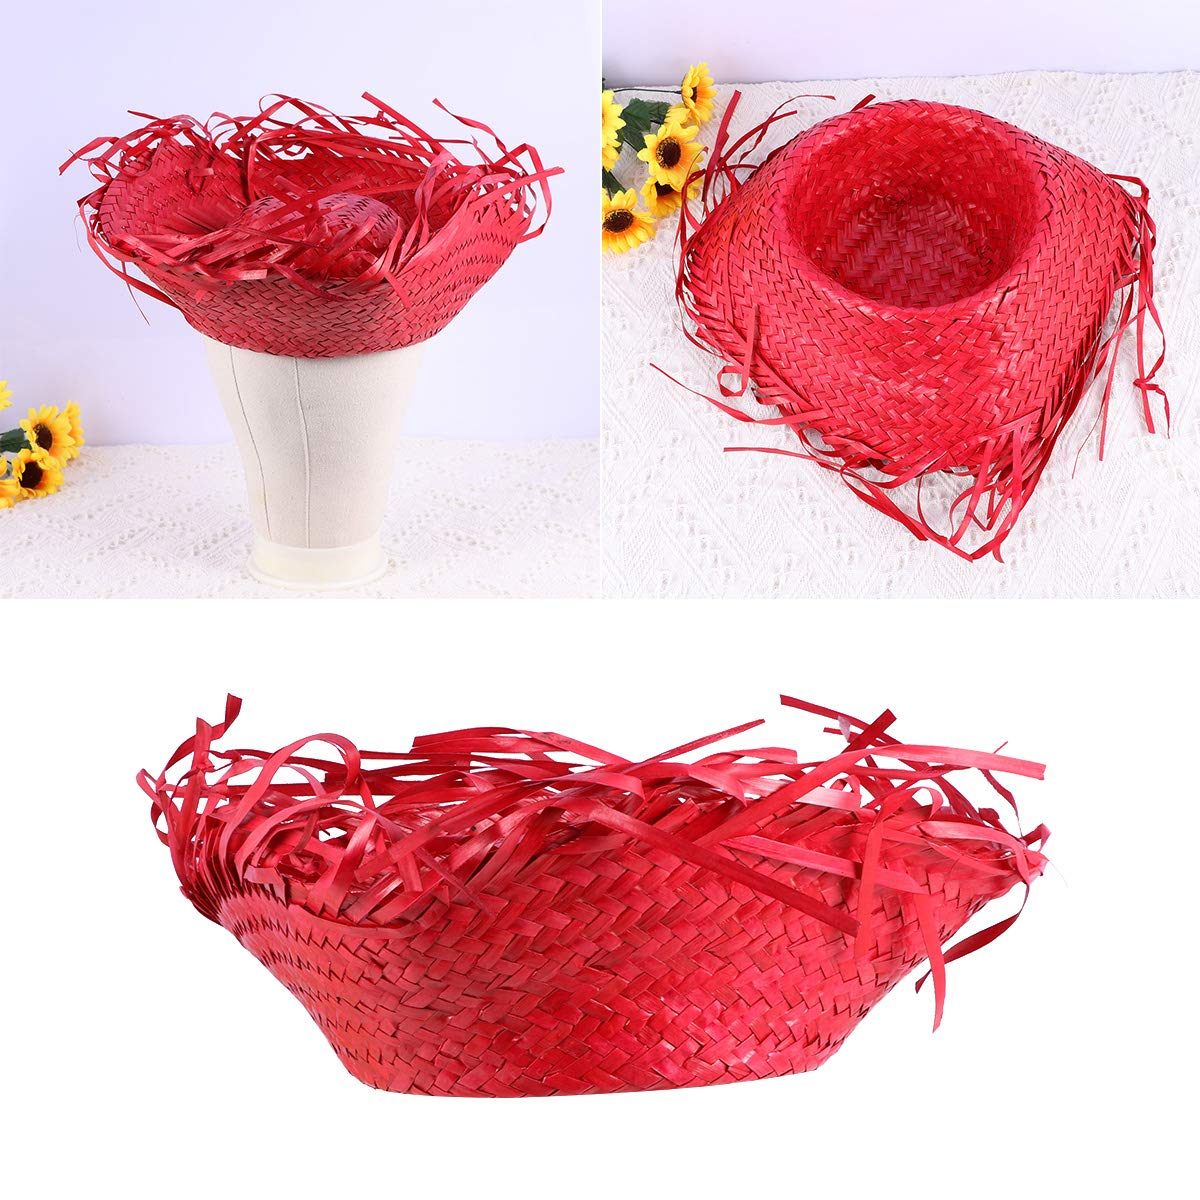 Amosfun Mexican Sombrero Hat Straw Hat Mexican Hat Hawaii Straw Hat Woven Hawaii Straw Hat for People Red